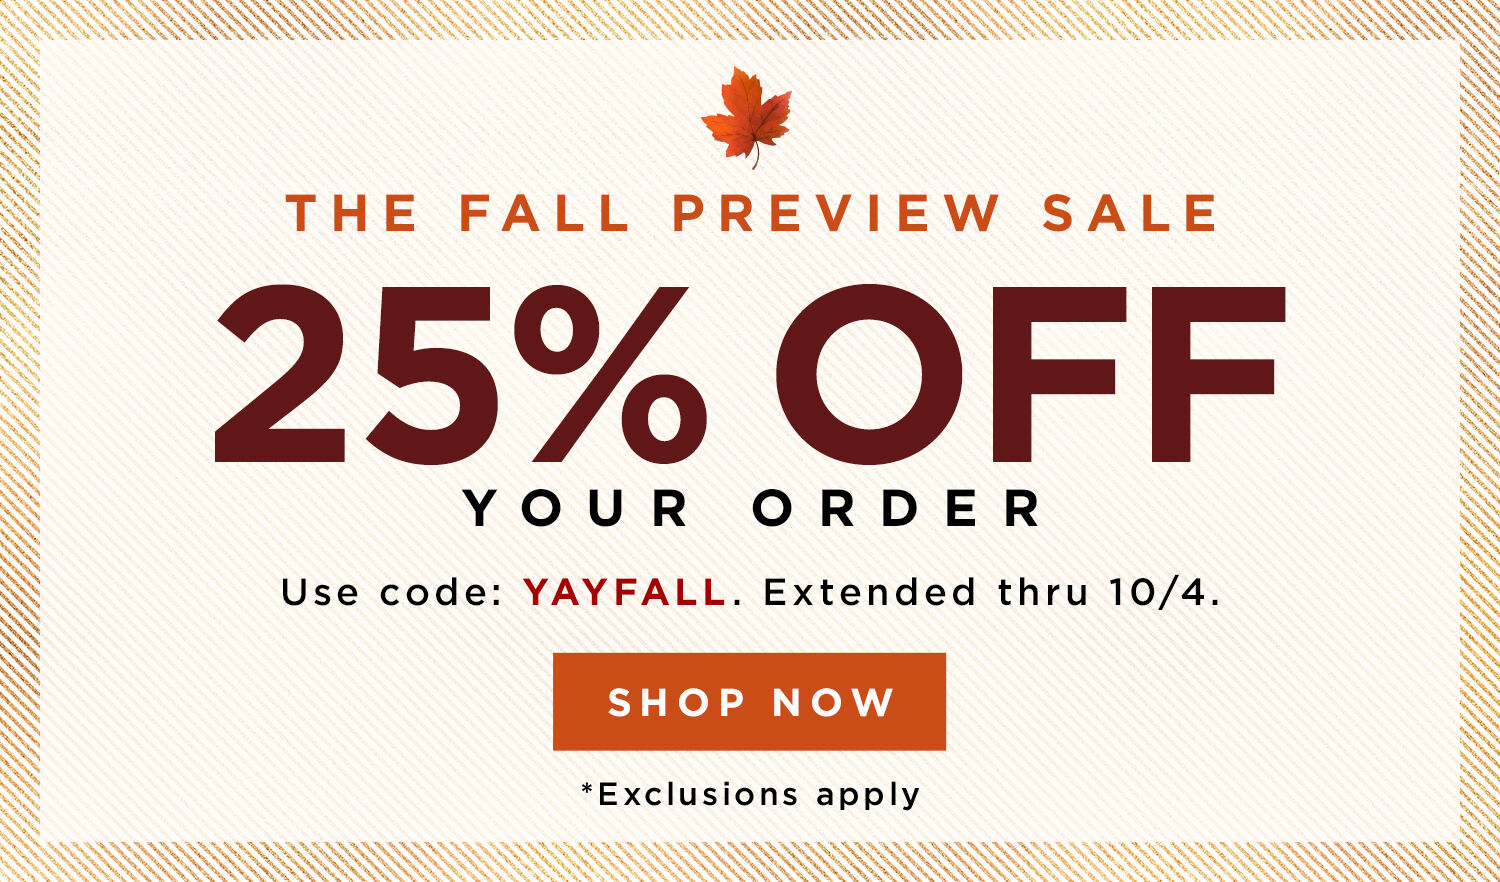 Fall Preview Sale! 25% OFF your order. Code: YAYFALL